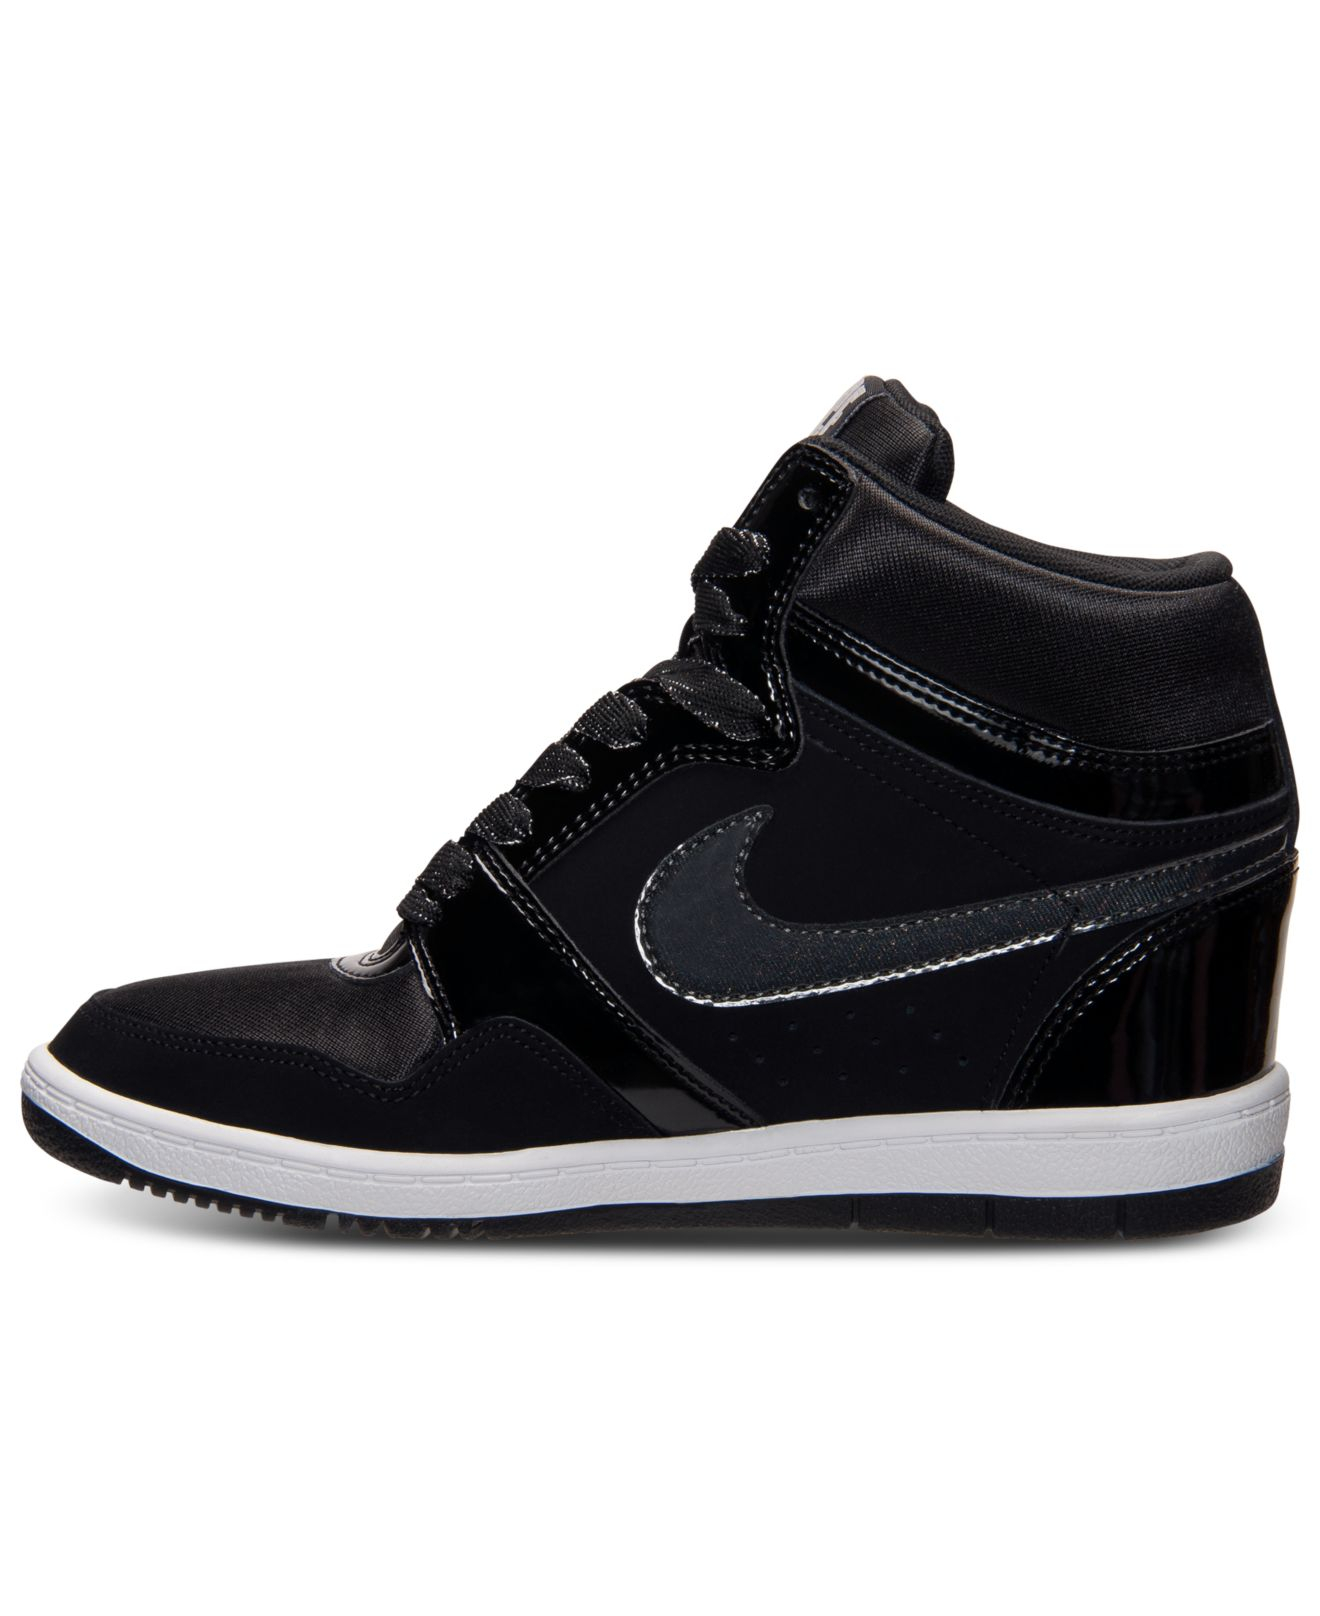 f76095efa288b Women's Nike Force Sky High Casual Shoes - 629746 012 | Finish Line | Black/